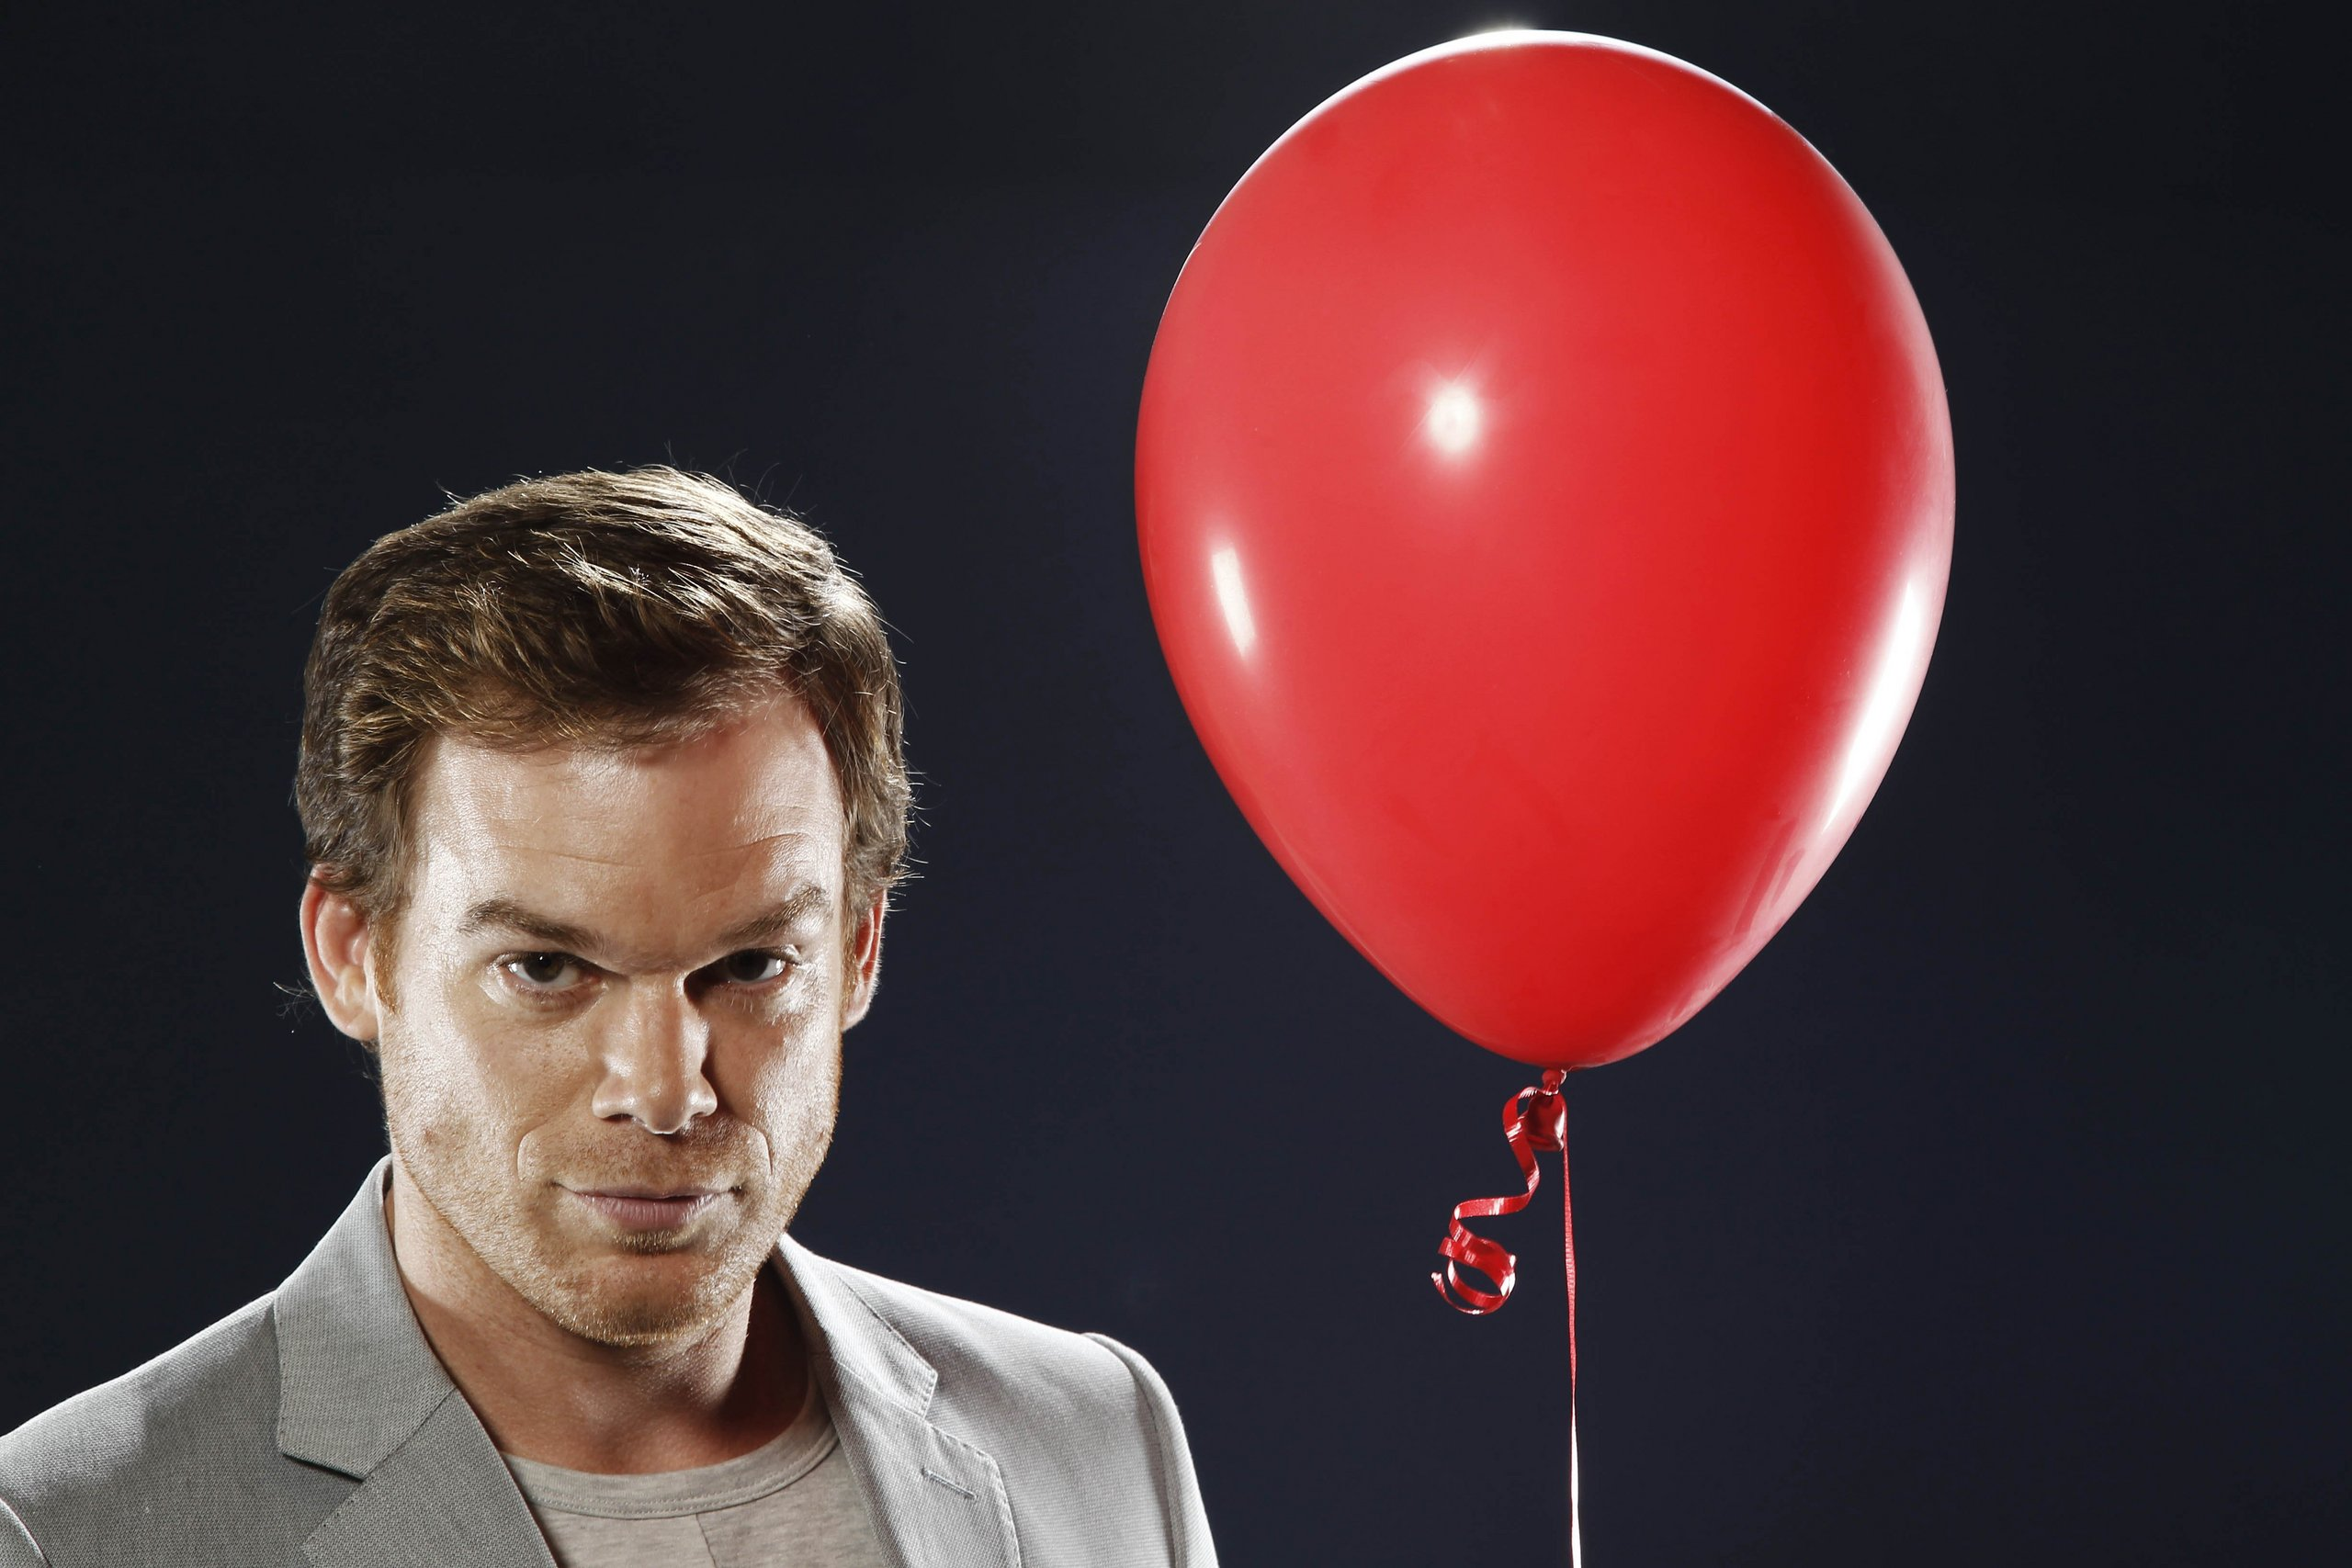 MICHAEL C. HALL - Isaac C. Hill (ancien psychiatre, savant fou) ► LIBRE Michael-C-Hall-s-Dexter-LMT-Music-Lodge-Photoshoot-Comic-Con-2011-HQ-dexter-24085790-2560-1707